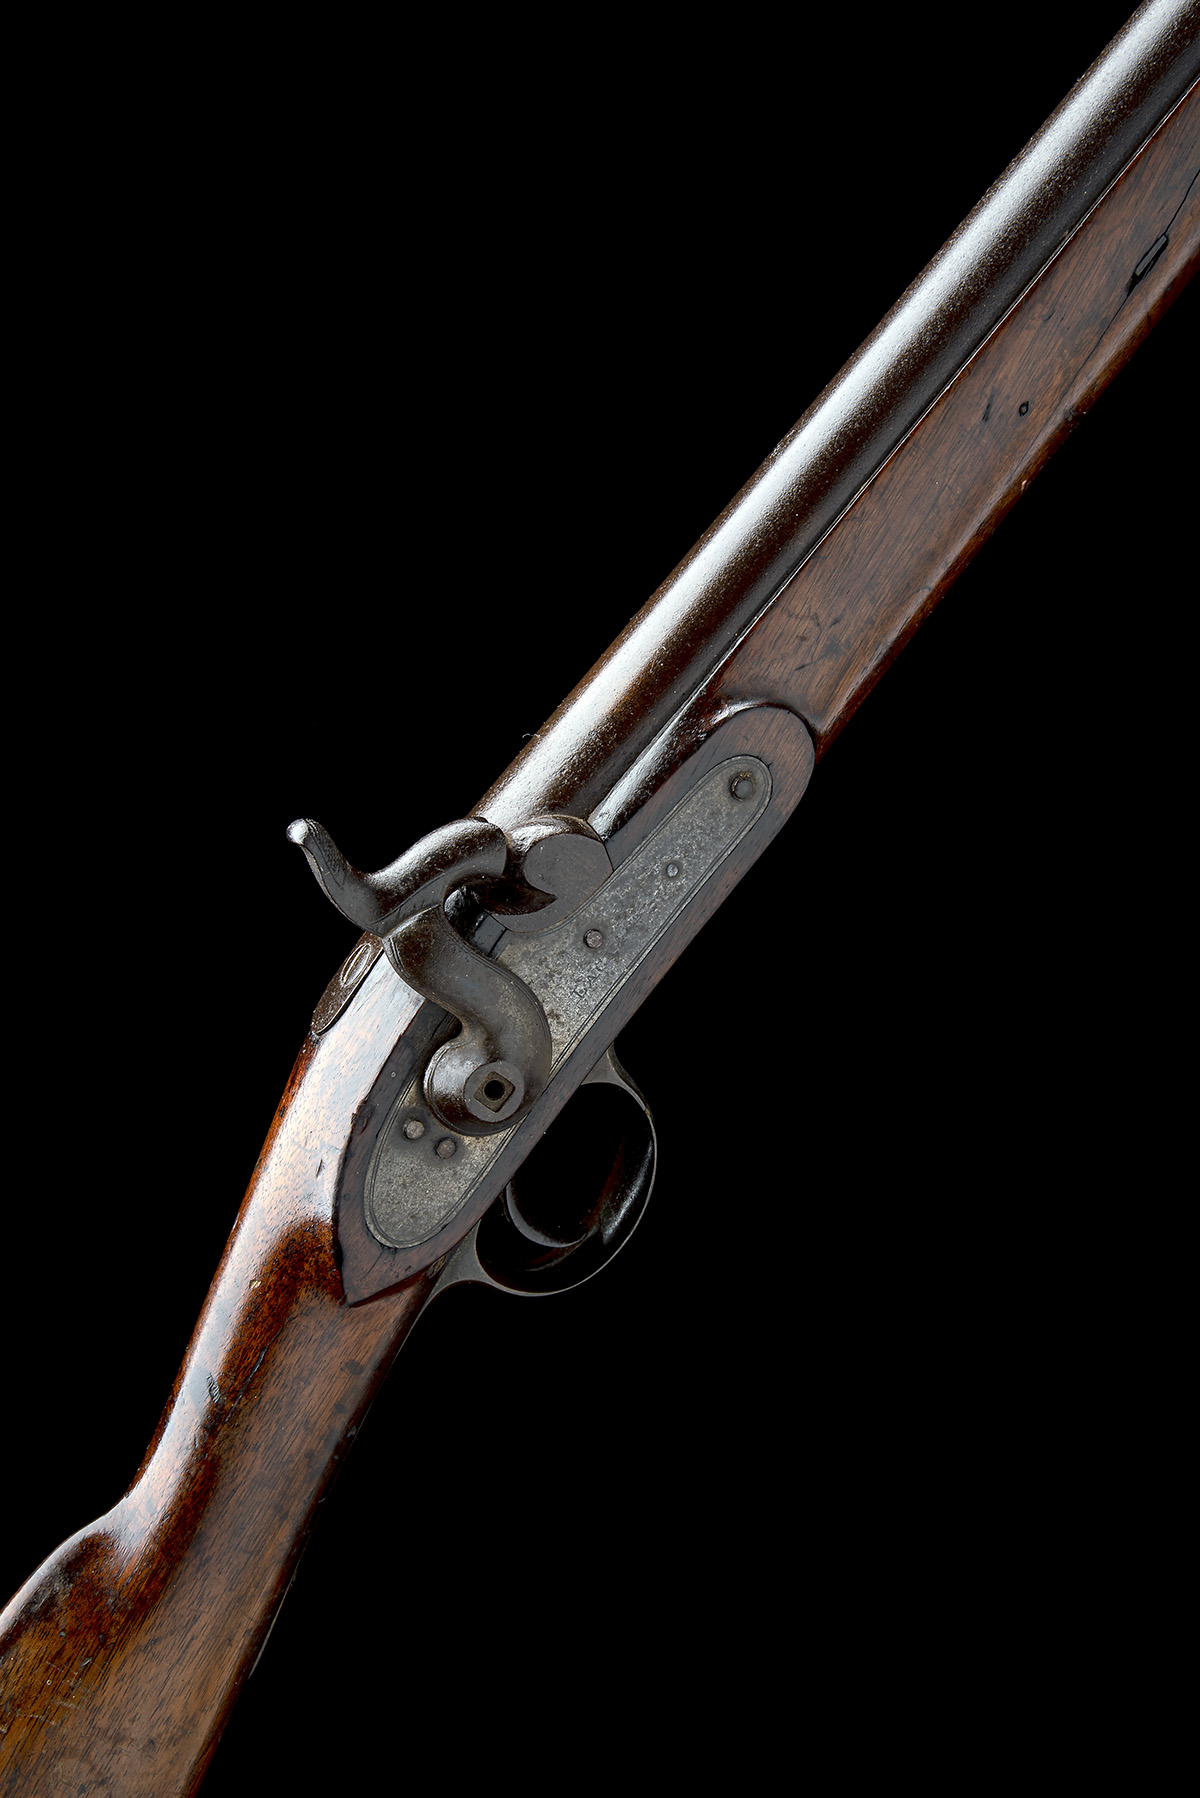 LACY & CO, LONDON A .750 PERCUSSION CARBINE, MODEL 'PATTERN '42 CONSTABULARY CARBINE', no visible